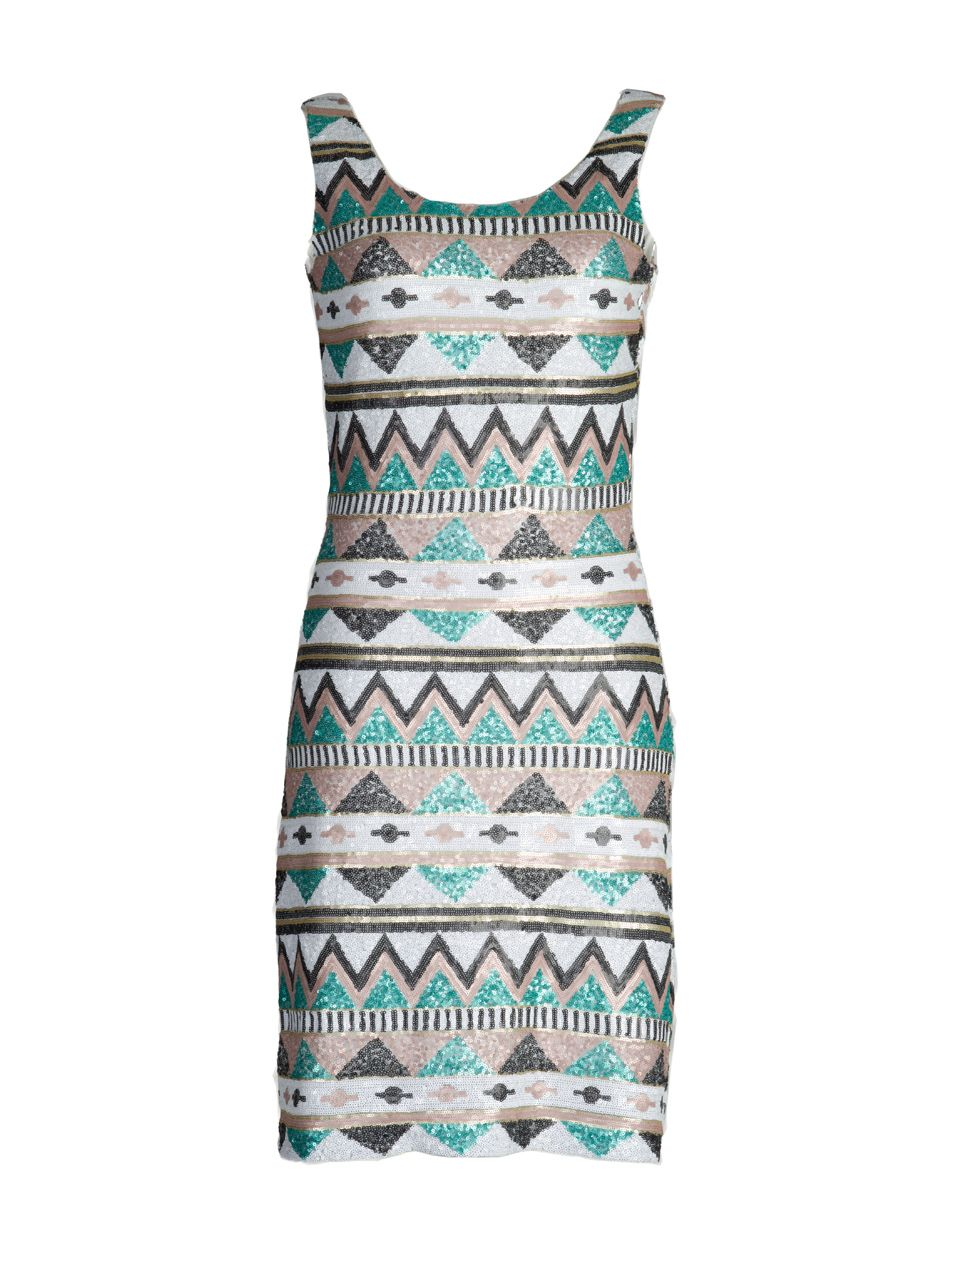 Tawnya embellished aztec print dress